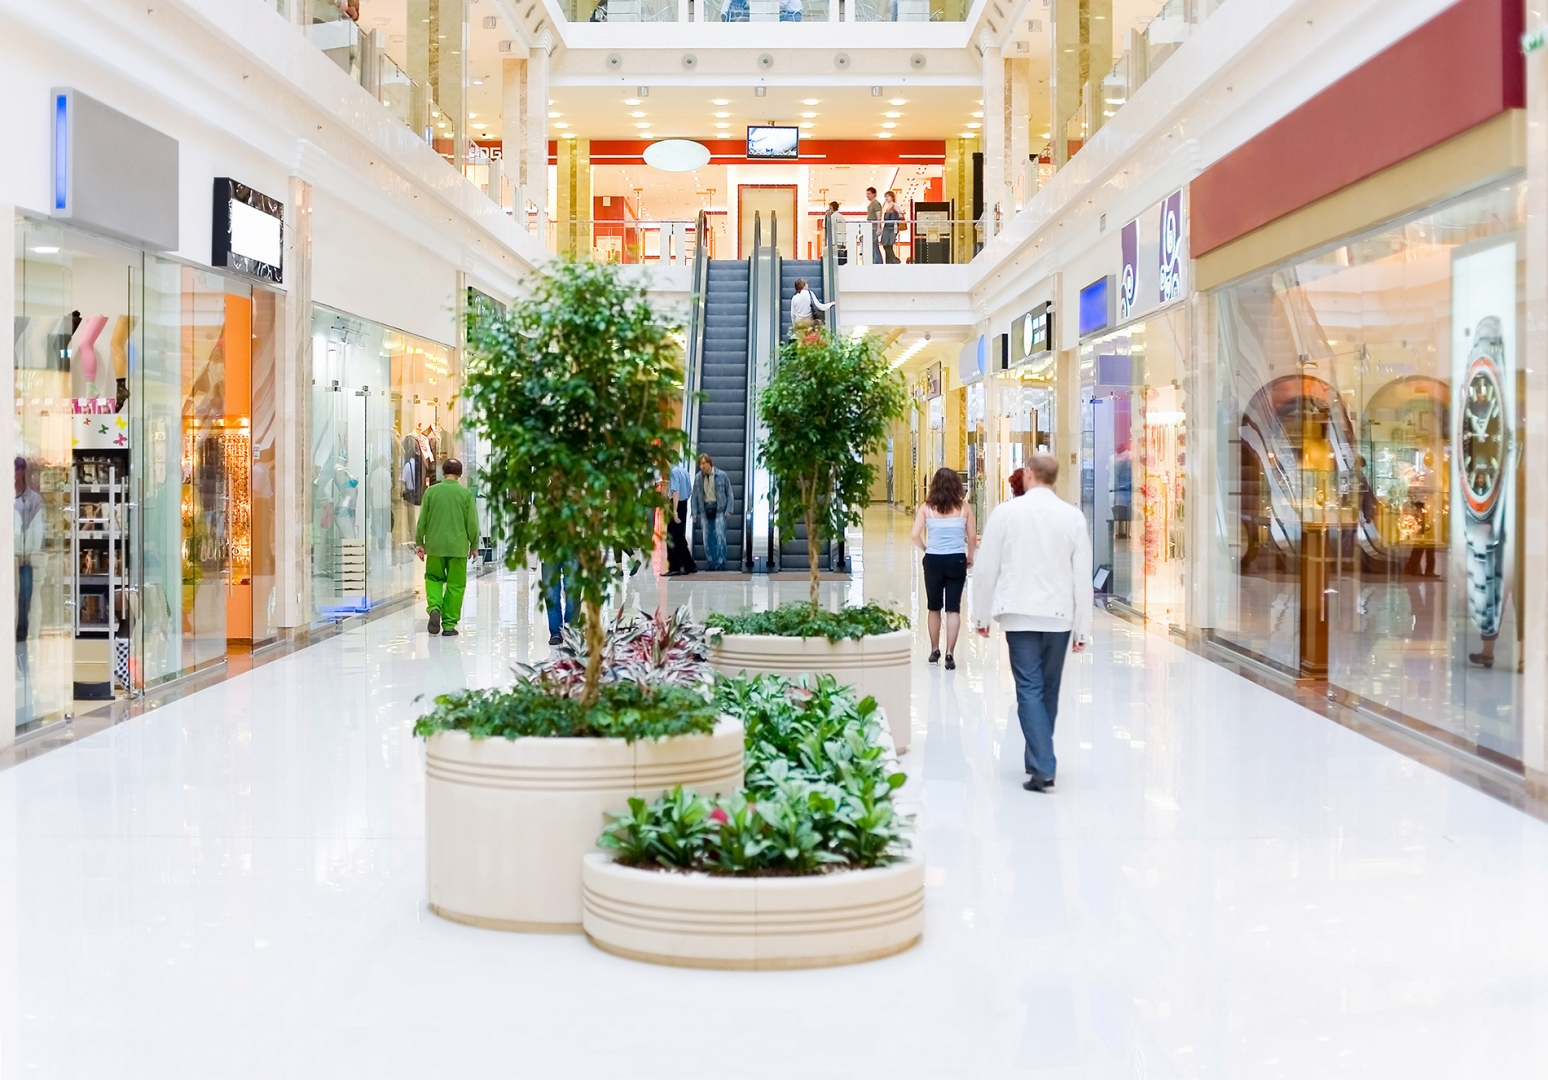 shoppers walking in a shopping mall